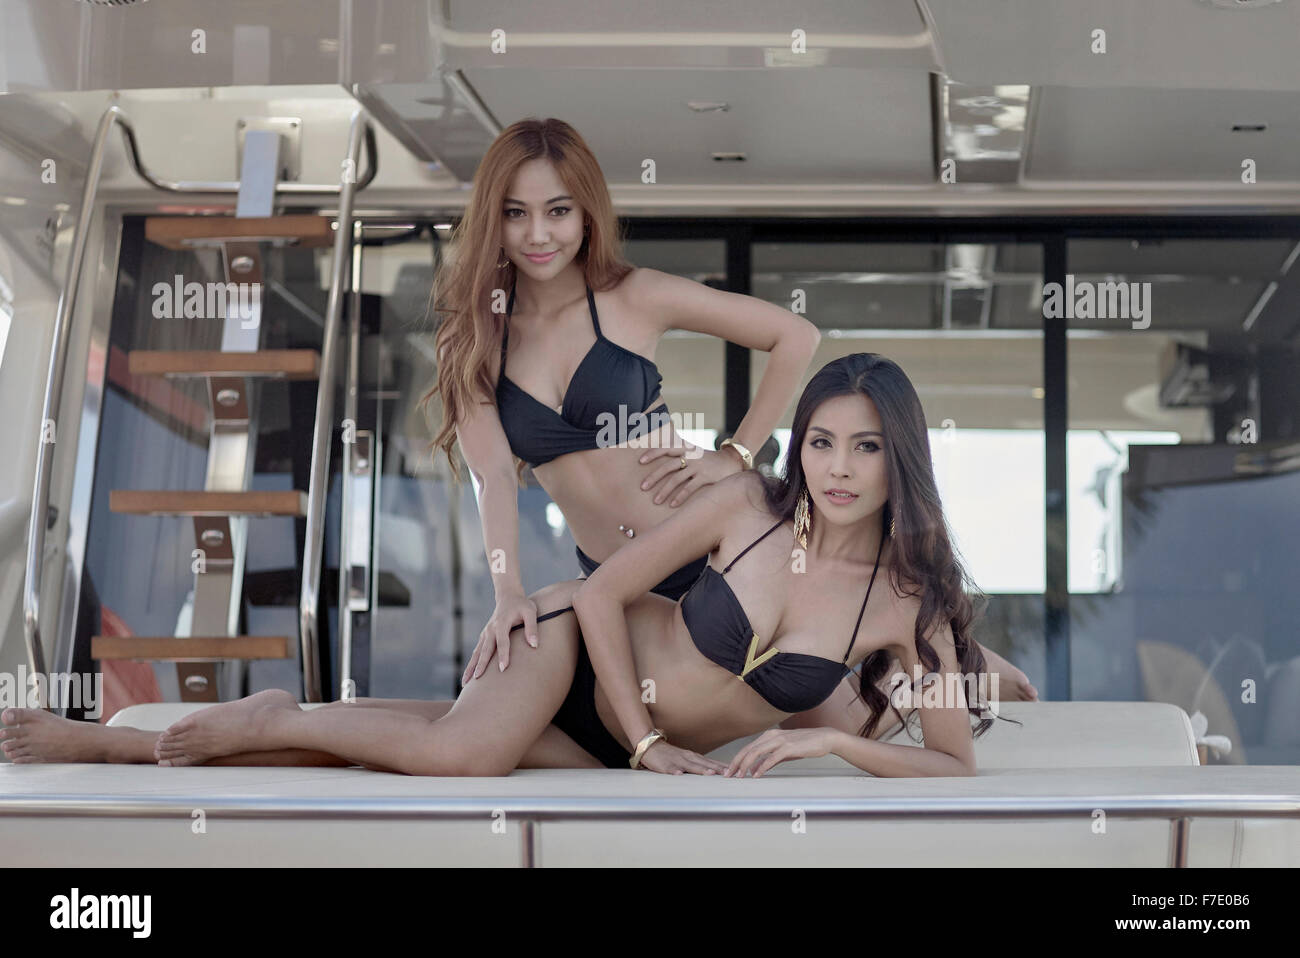 Promotion models in bikinis. Thailand boat show. S. E. Asia. - Stock Image